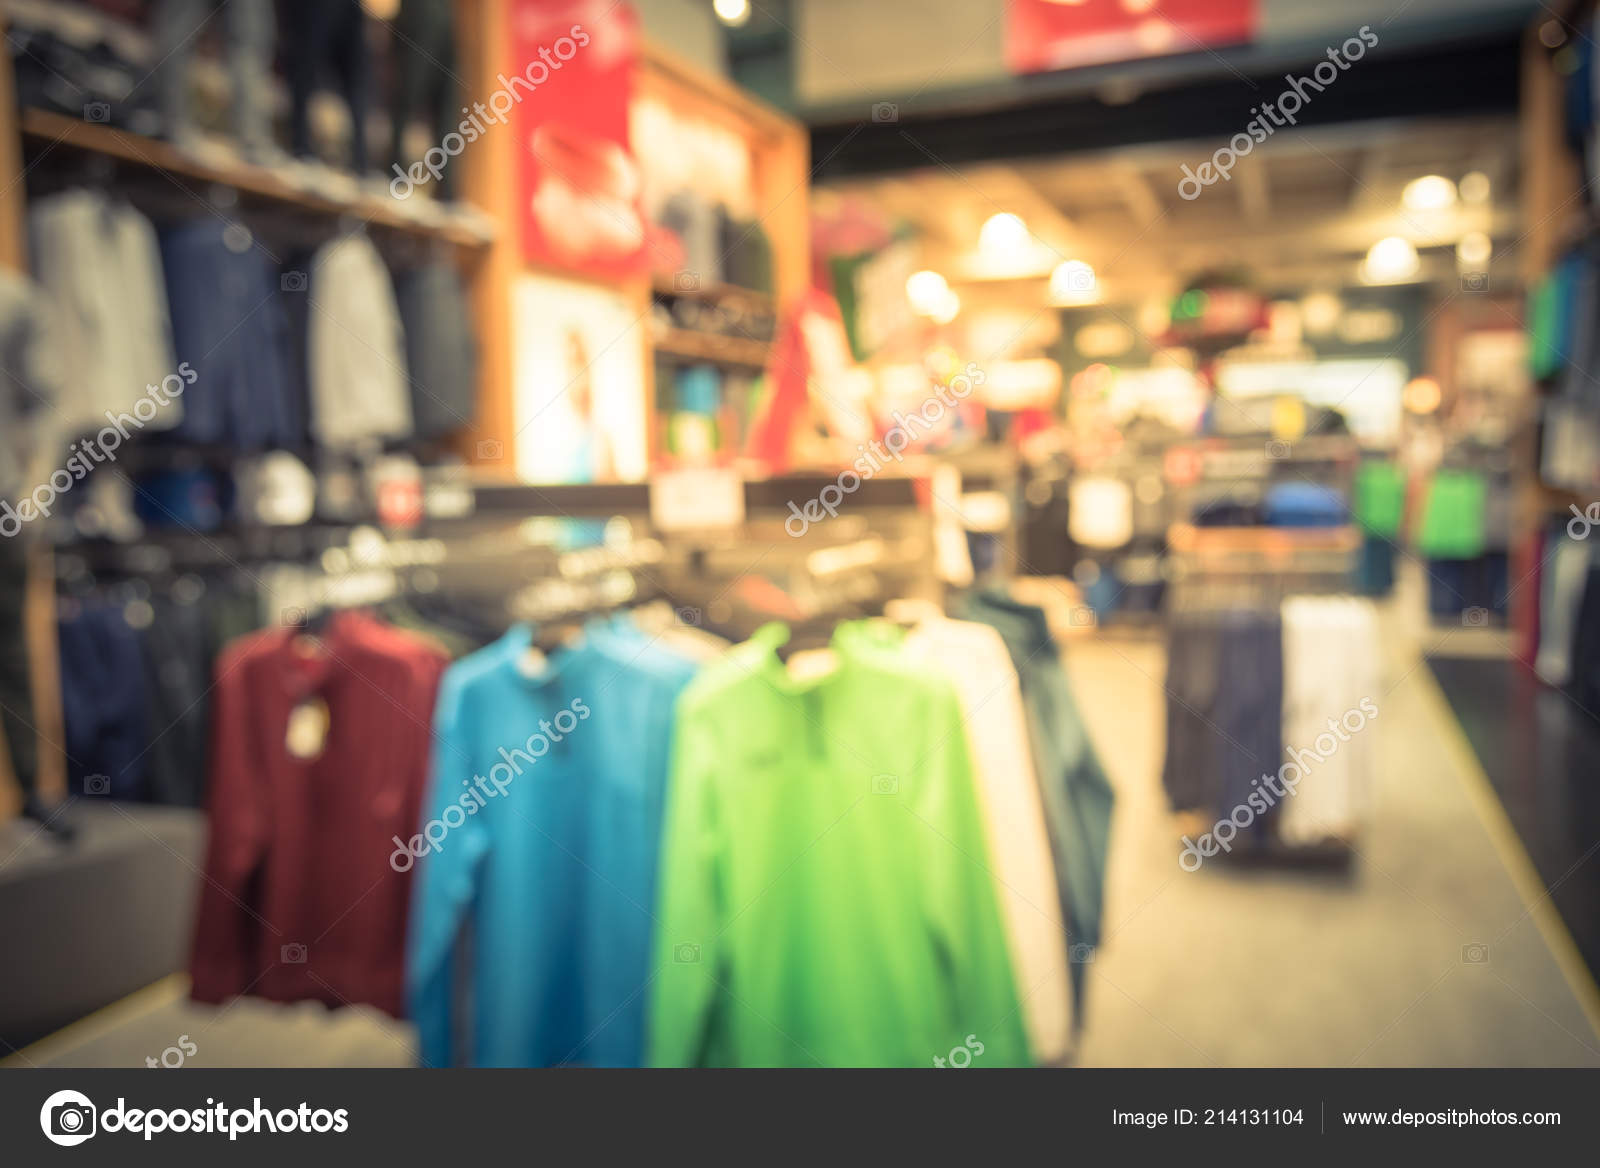 d3896d8094b88 Vintage tone blurred image interior of sports and fitness clothing store in  America. Sport shop with famous sports fashion brand worldwide of athletic  shoes ...